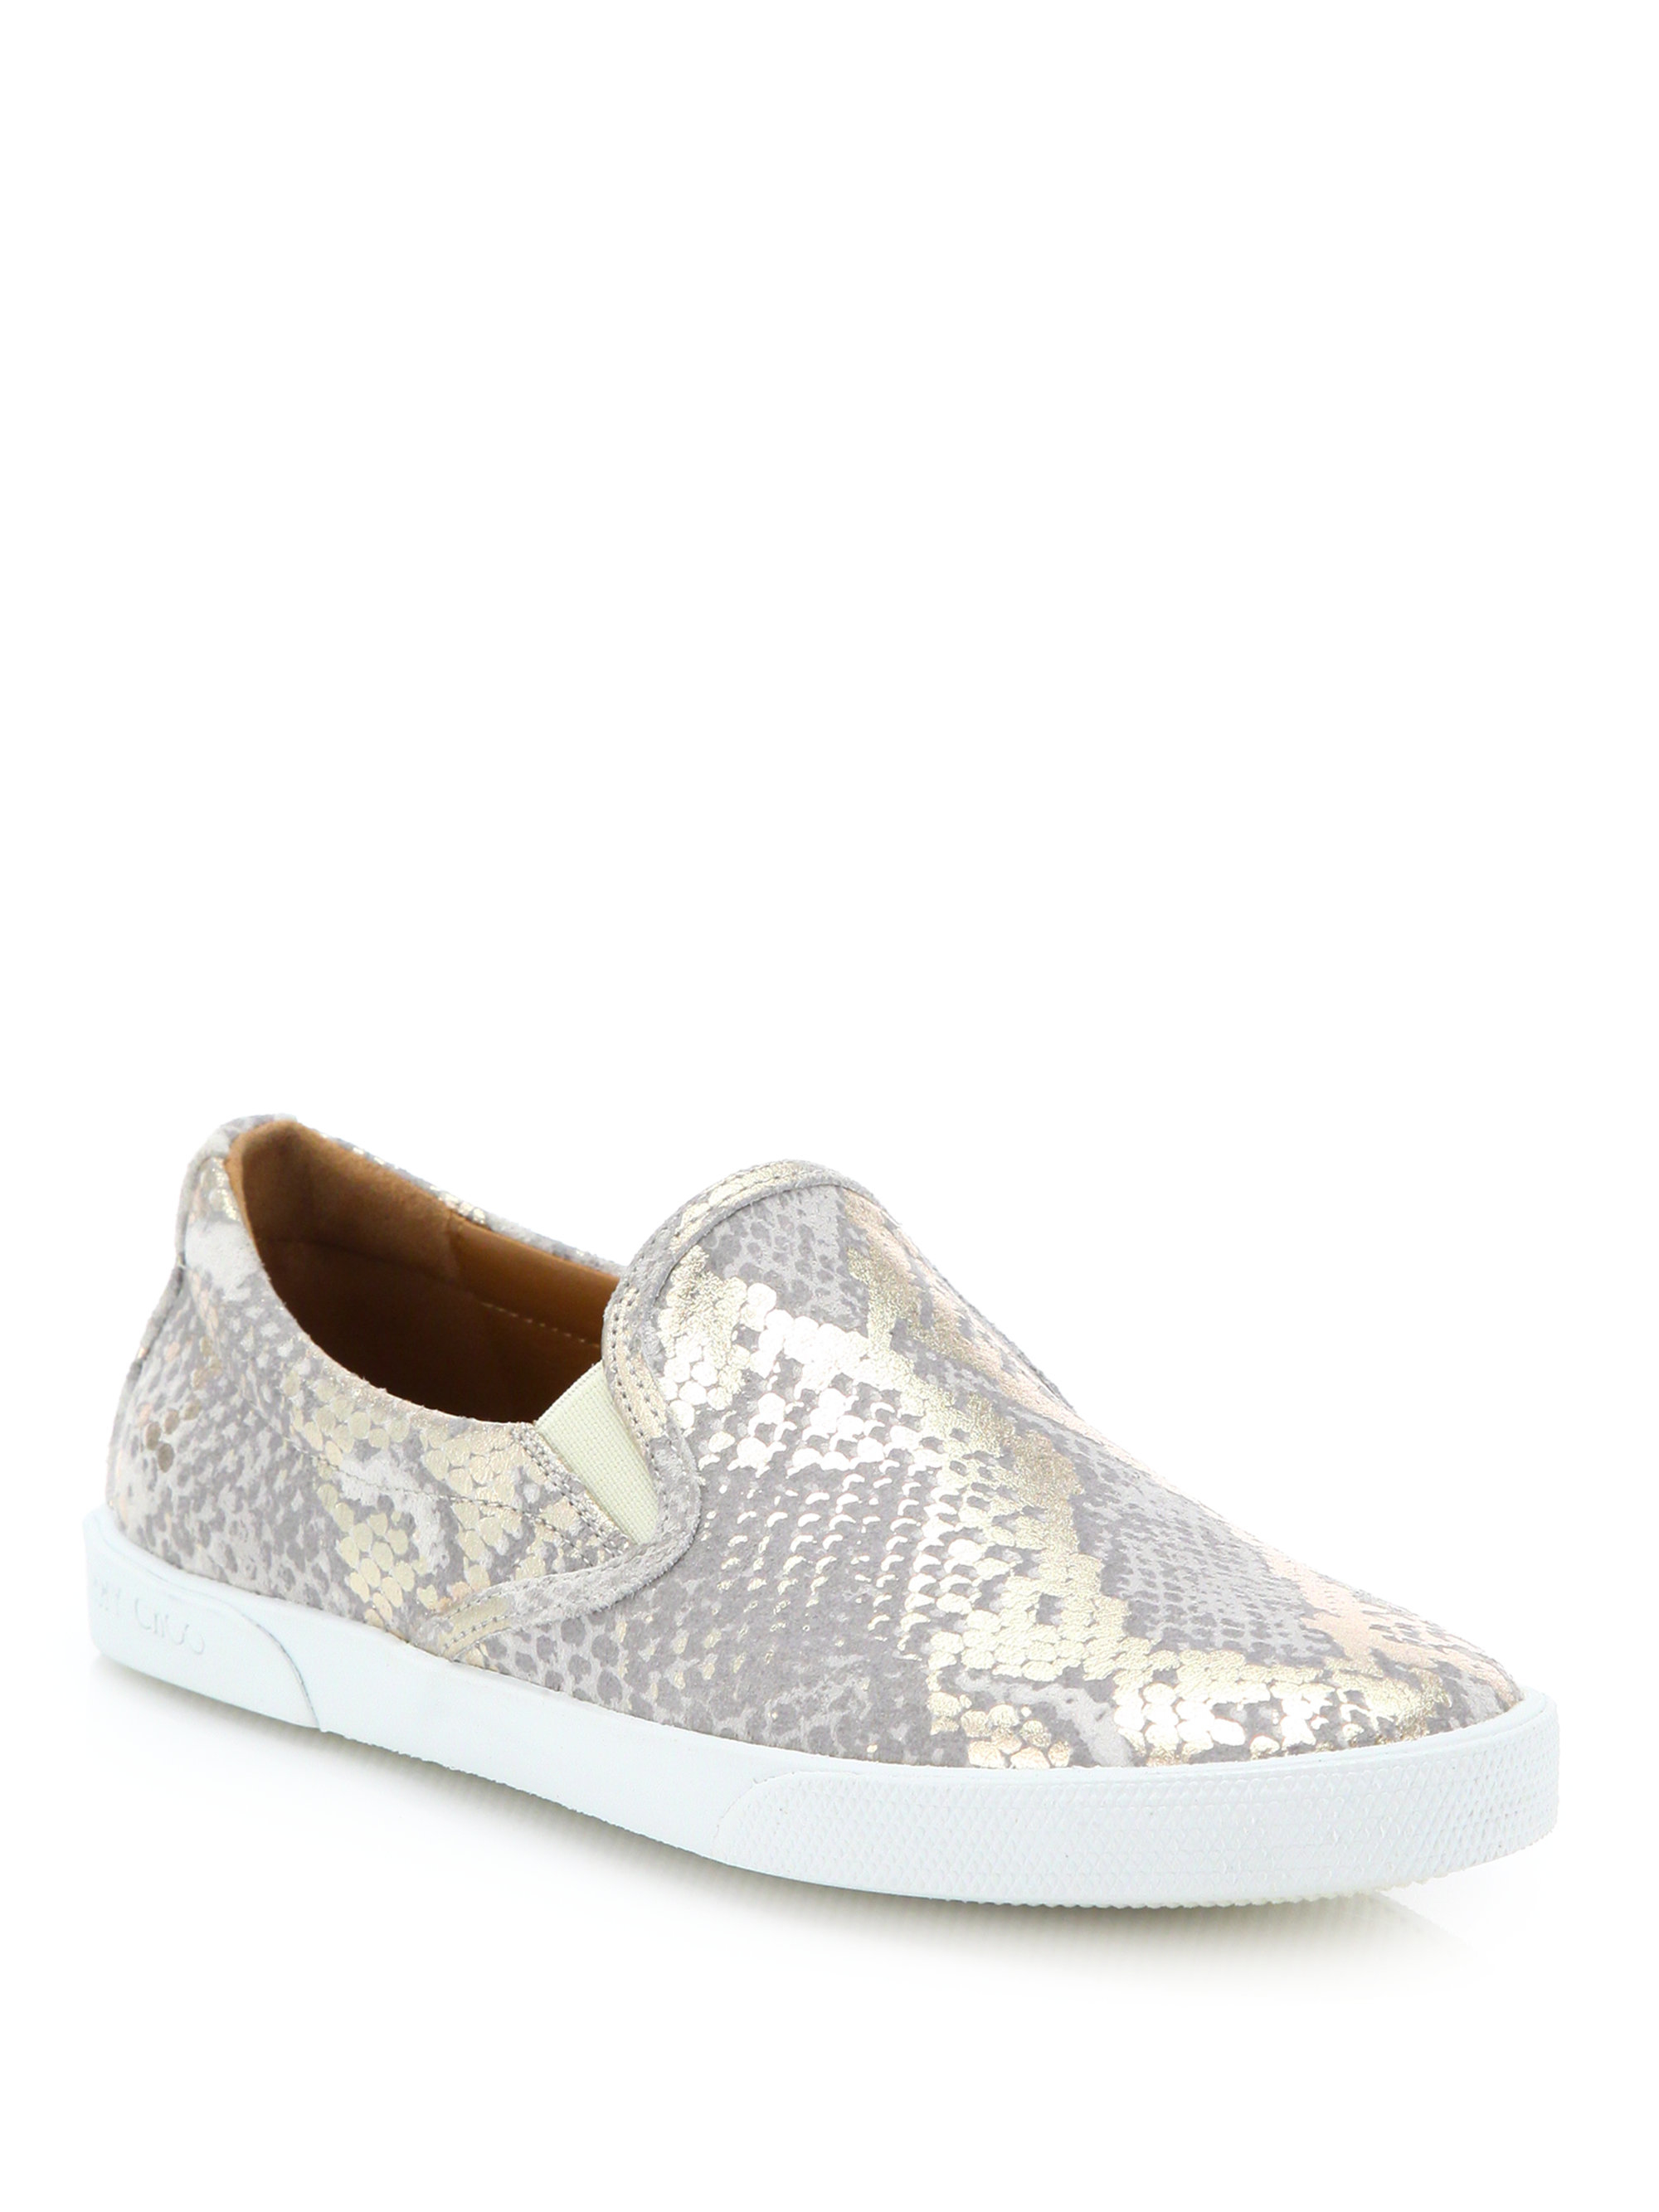 7f05f9c837 ... top quality jimmy choo leather snakeskin print sneakers 95463 a4261